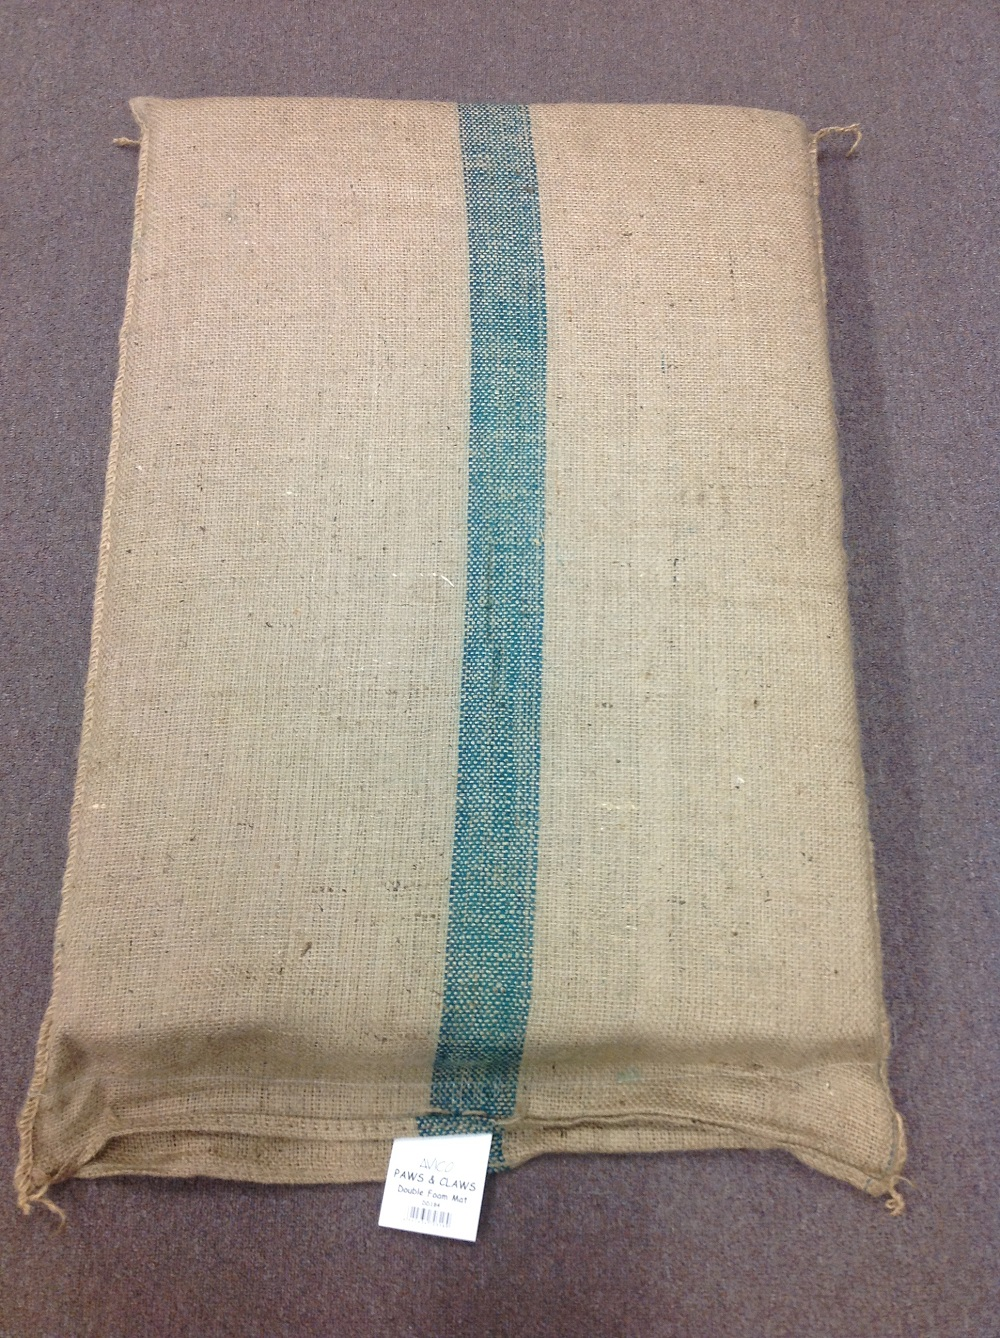 DOUBLE THICK FOAM HESSIAN DOG BED 107x74x8cmH